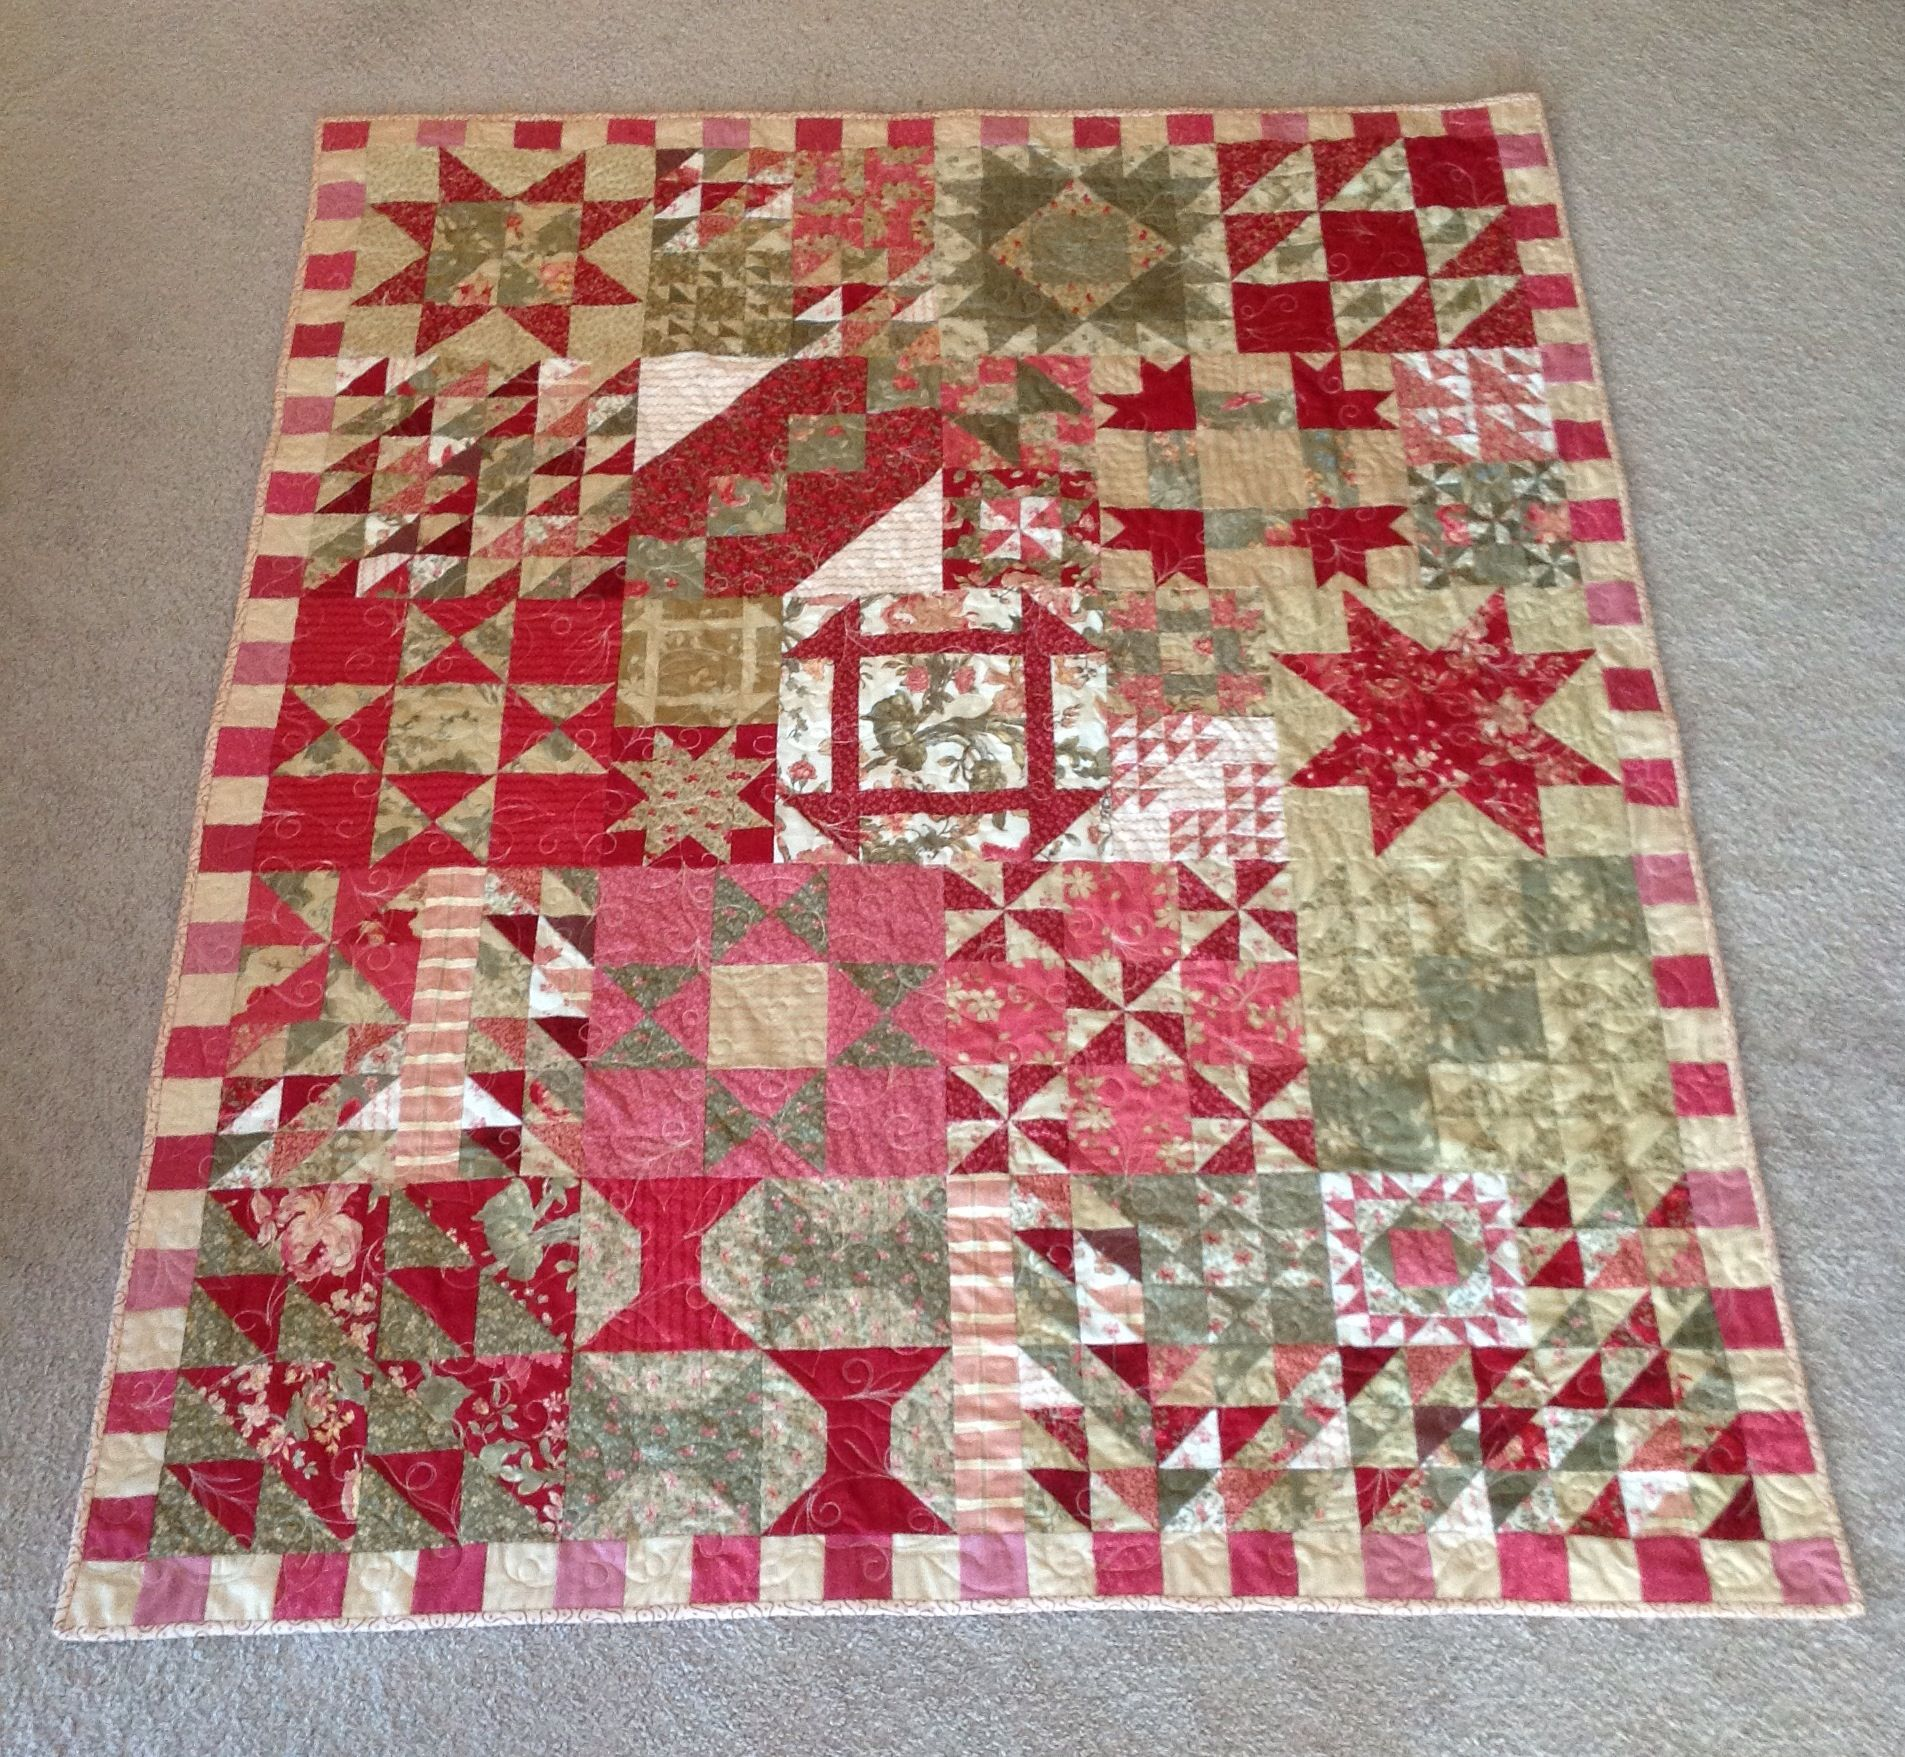 2013 Free Online Block of the Month Sampler from Country Threads ... : country threads quilt shop - Adamdwight.com